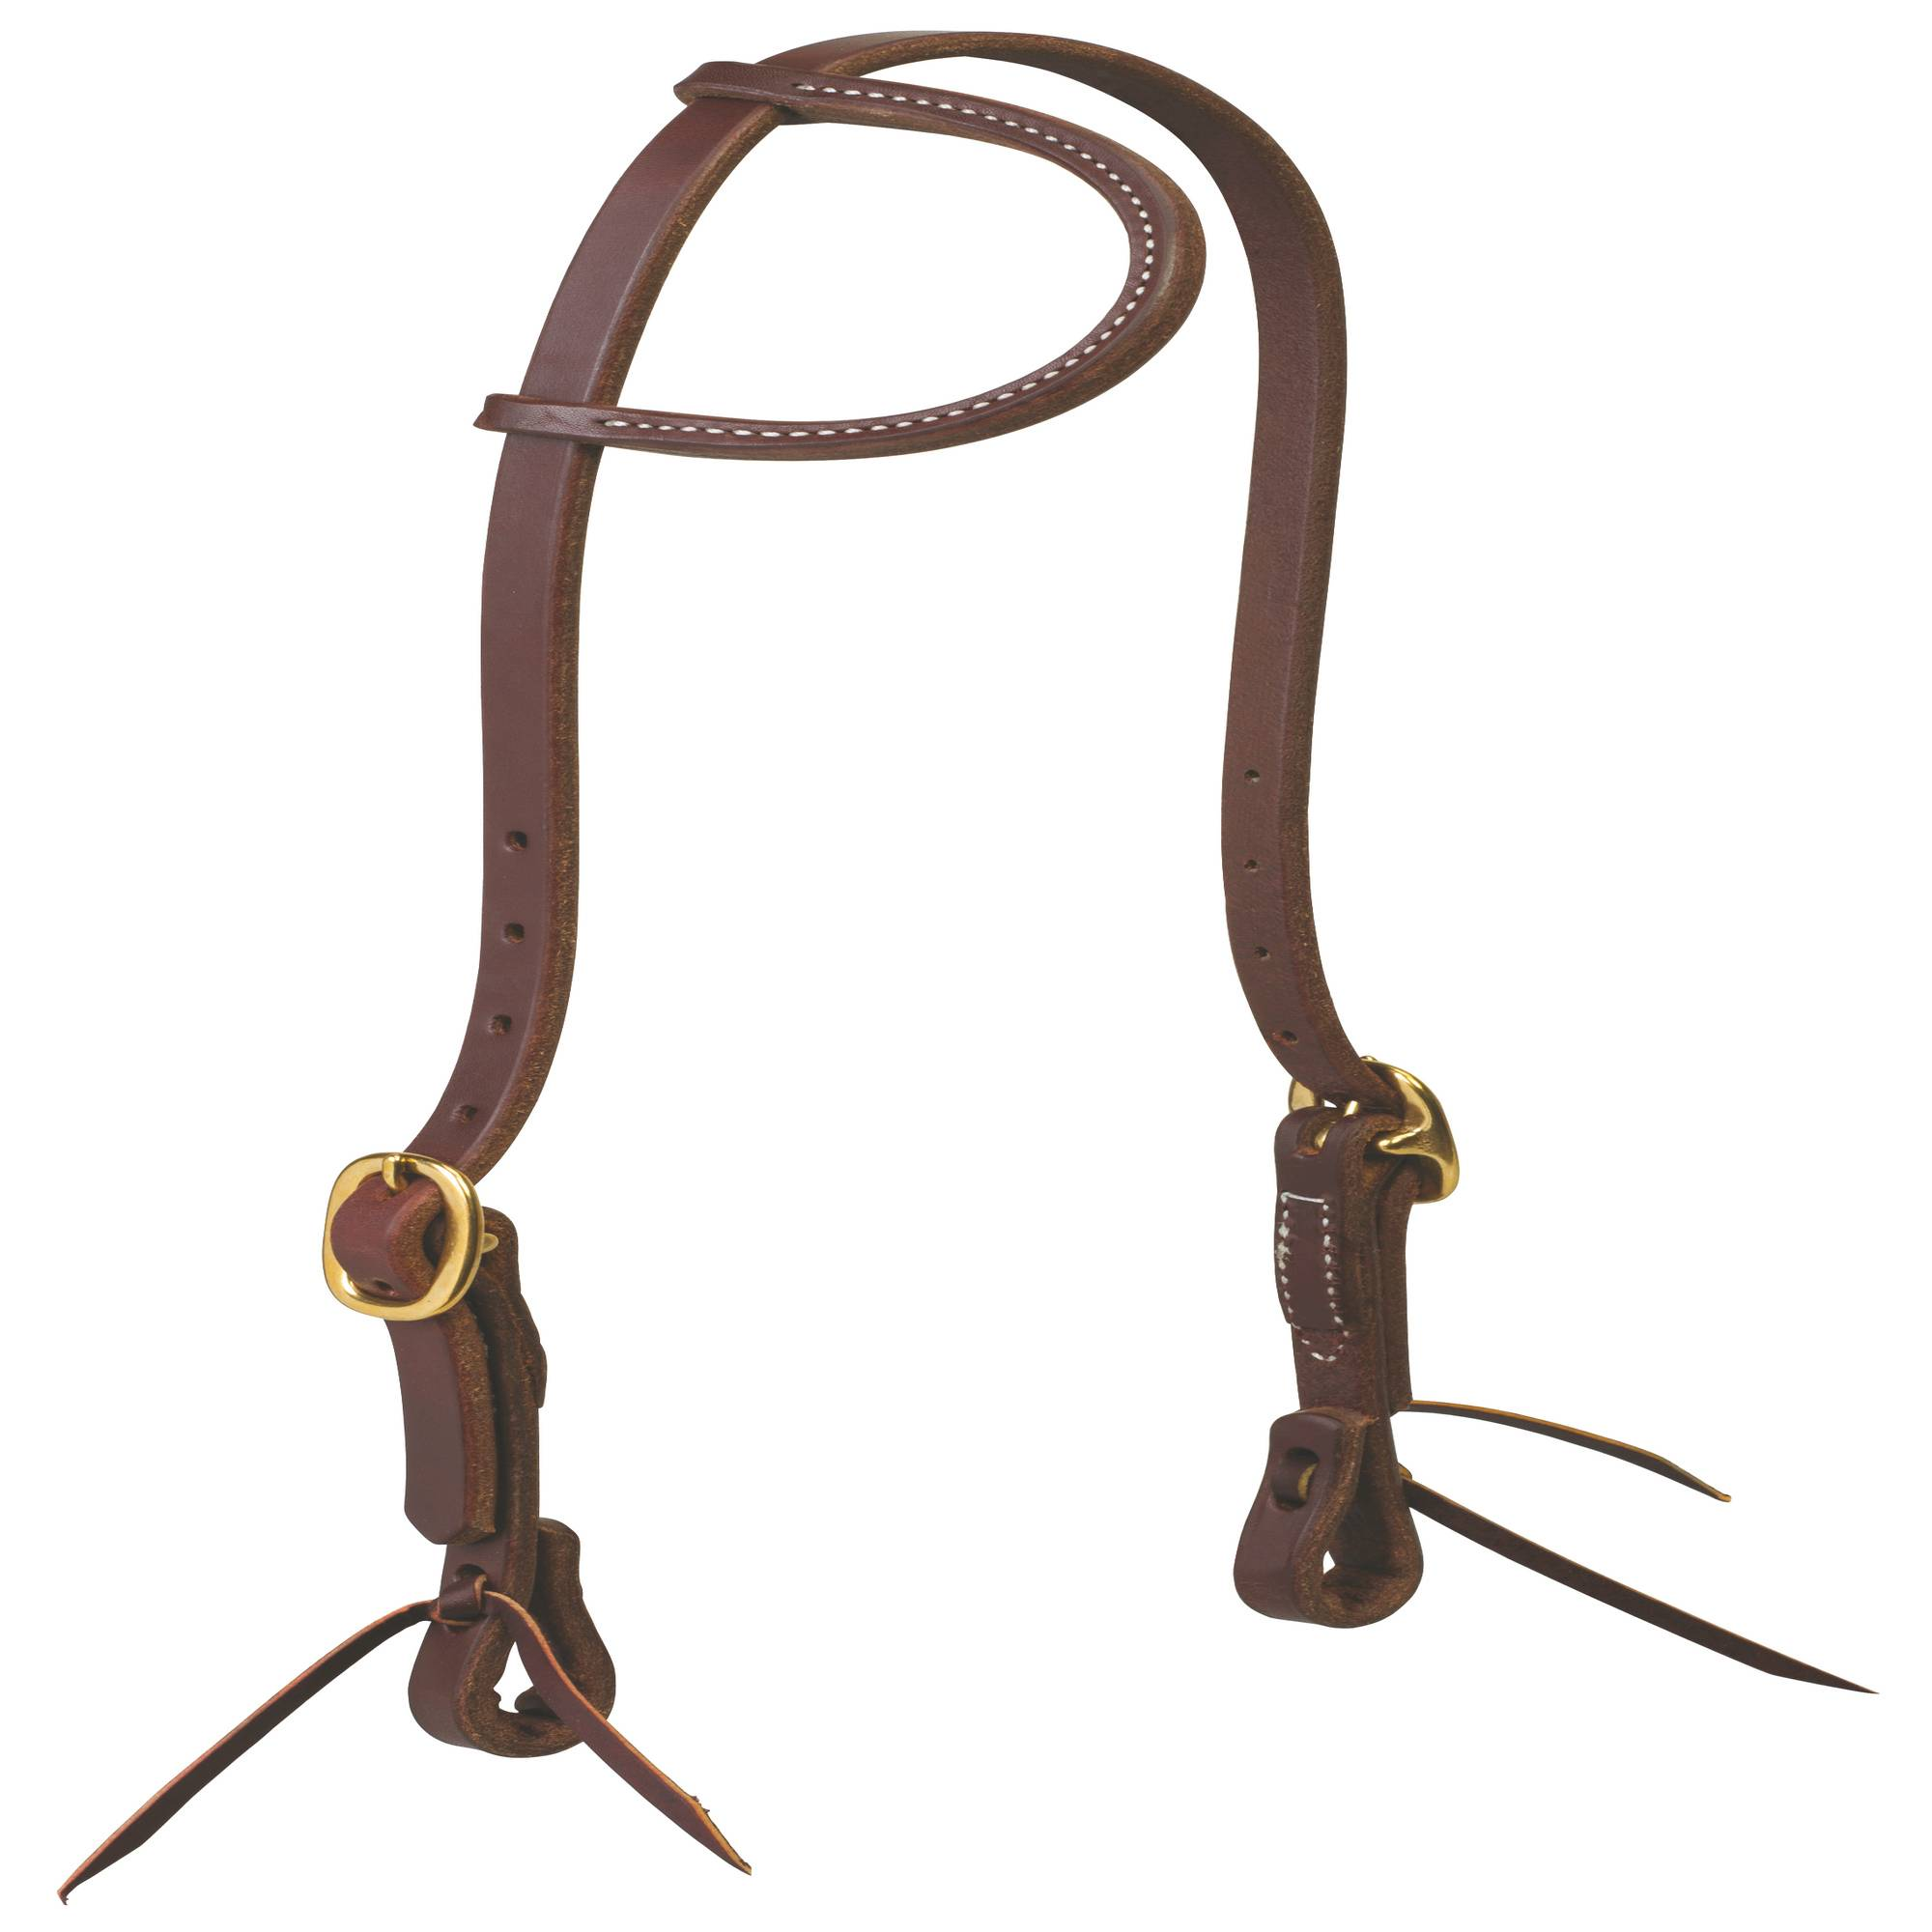 Weaver Working Cowboy Sliding Ear Headstall with Tie Ends